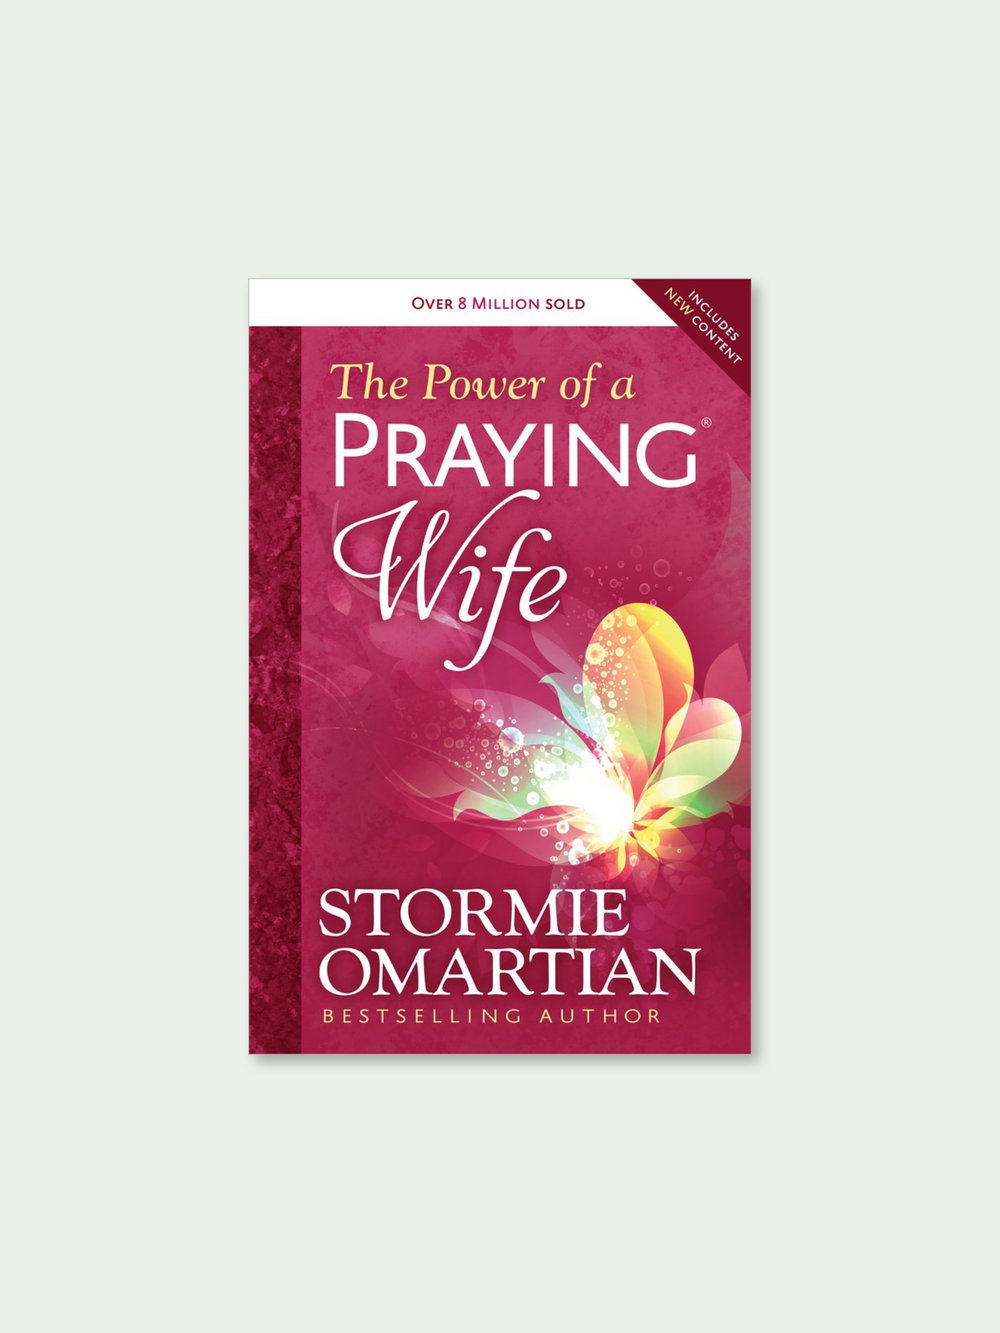 The Power of a Praying Wife